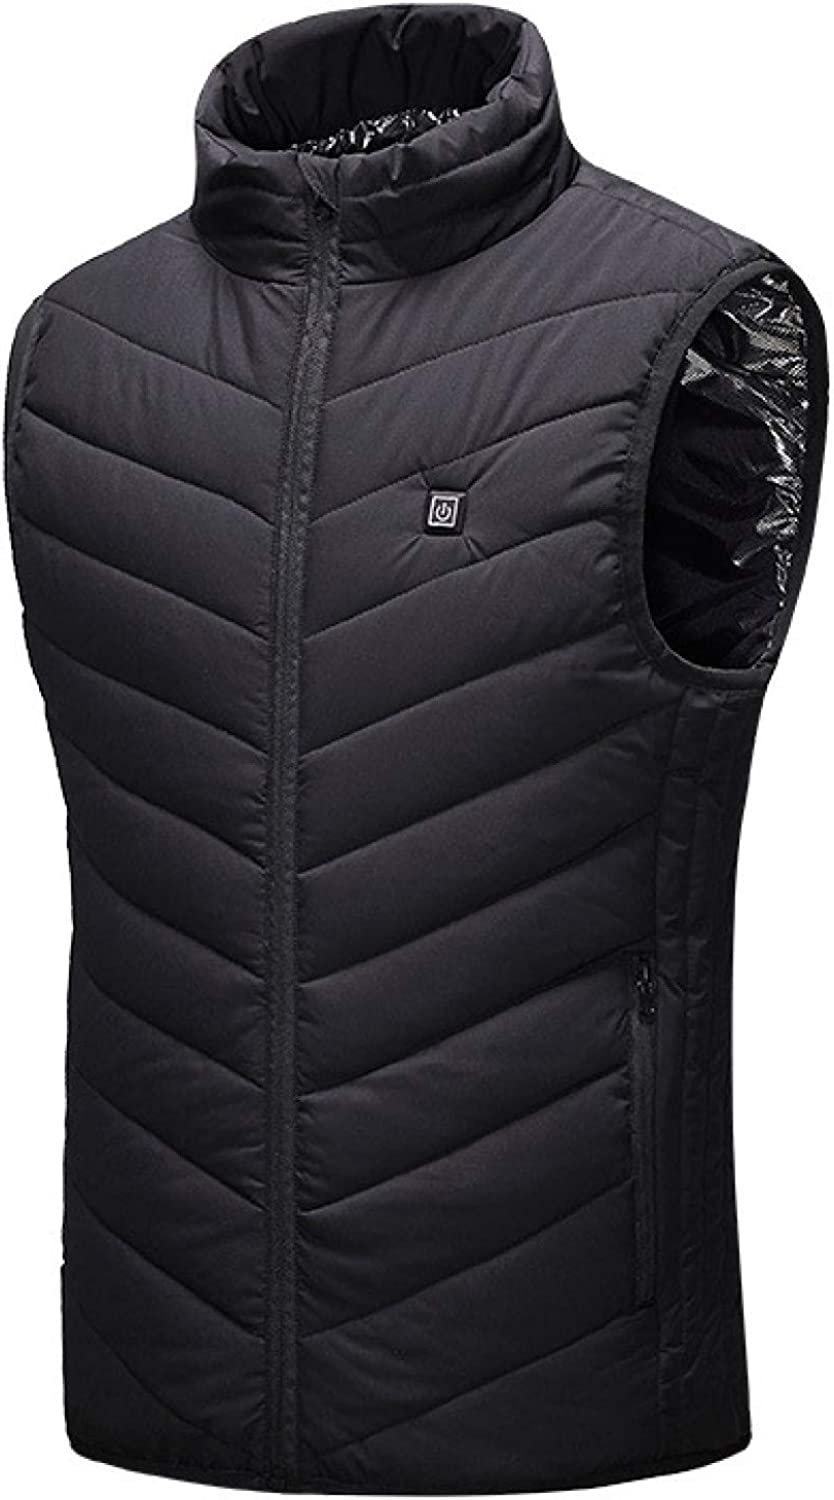 Men's Winter Quilted Puffer Vest With Zipper Pockets Waistcoat Polyester Outdoor Insulated Lightweight Gilets for Sports